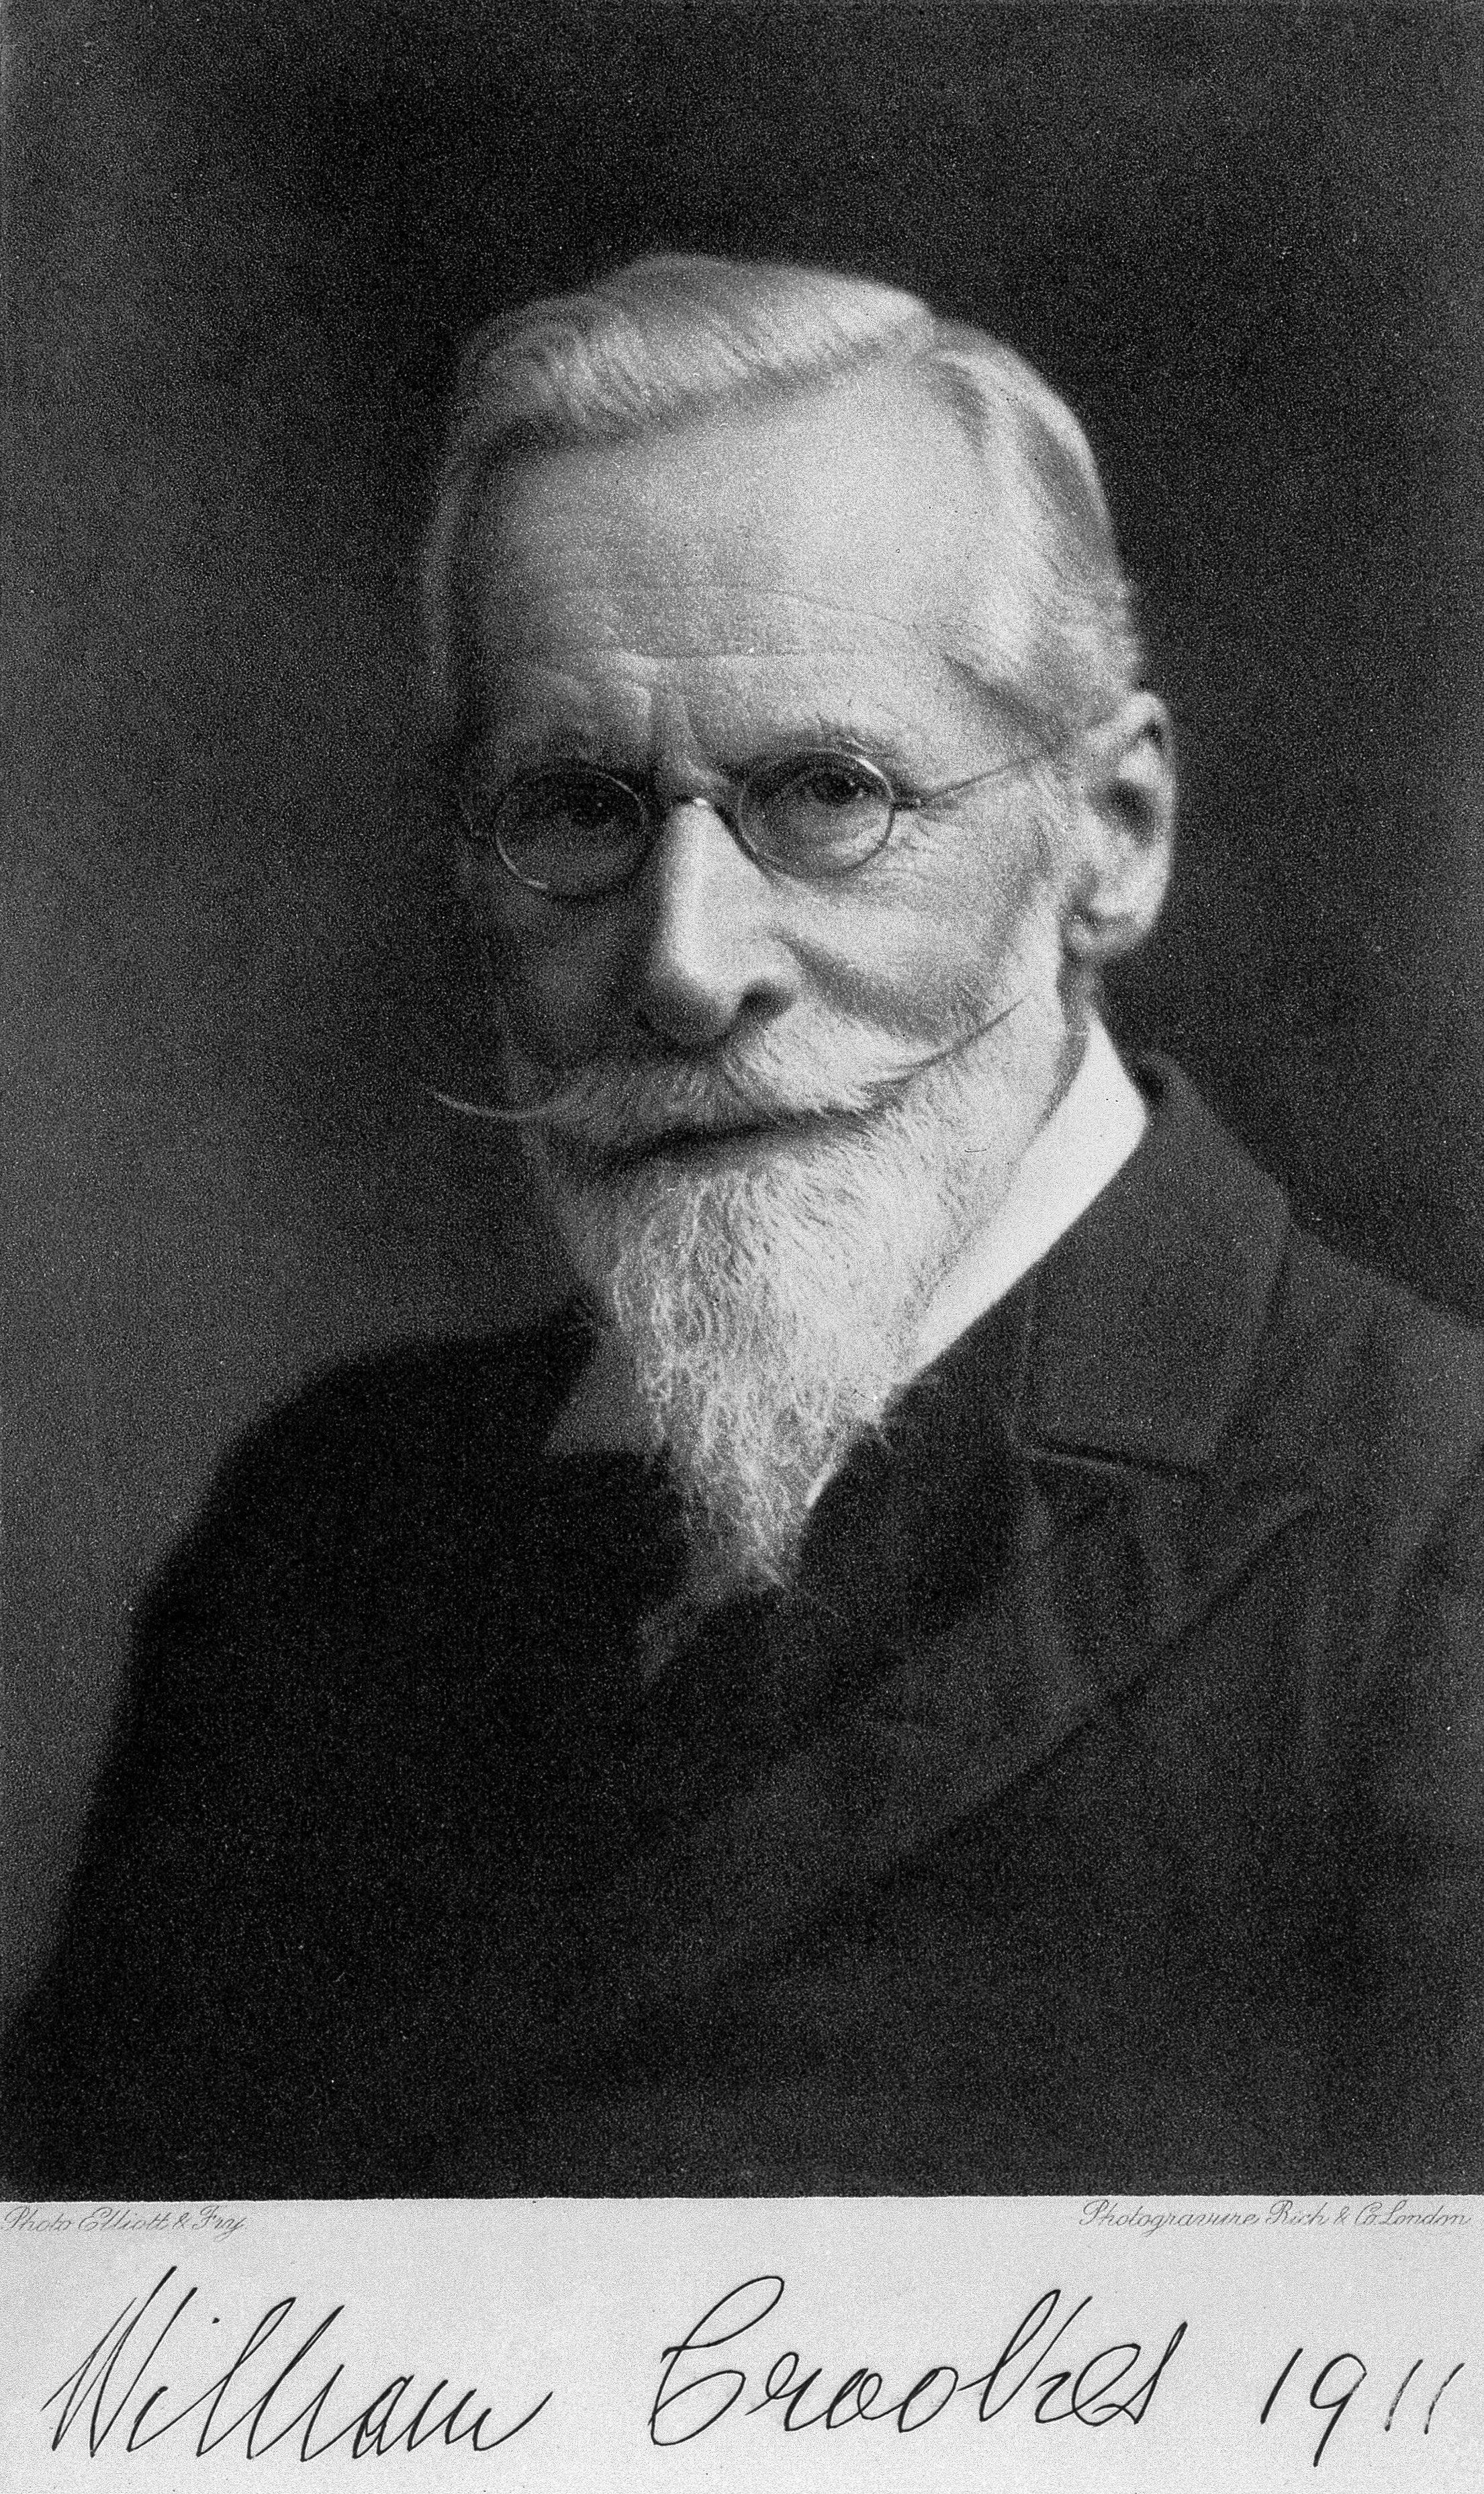 Image of Sir William Crookes from Wikidata